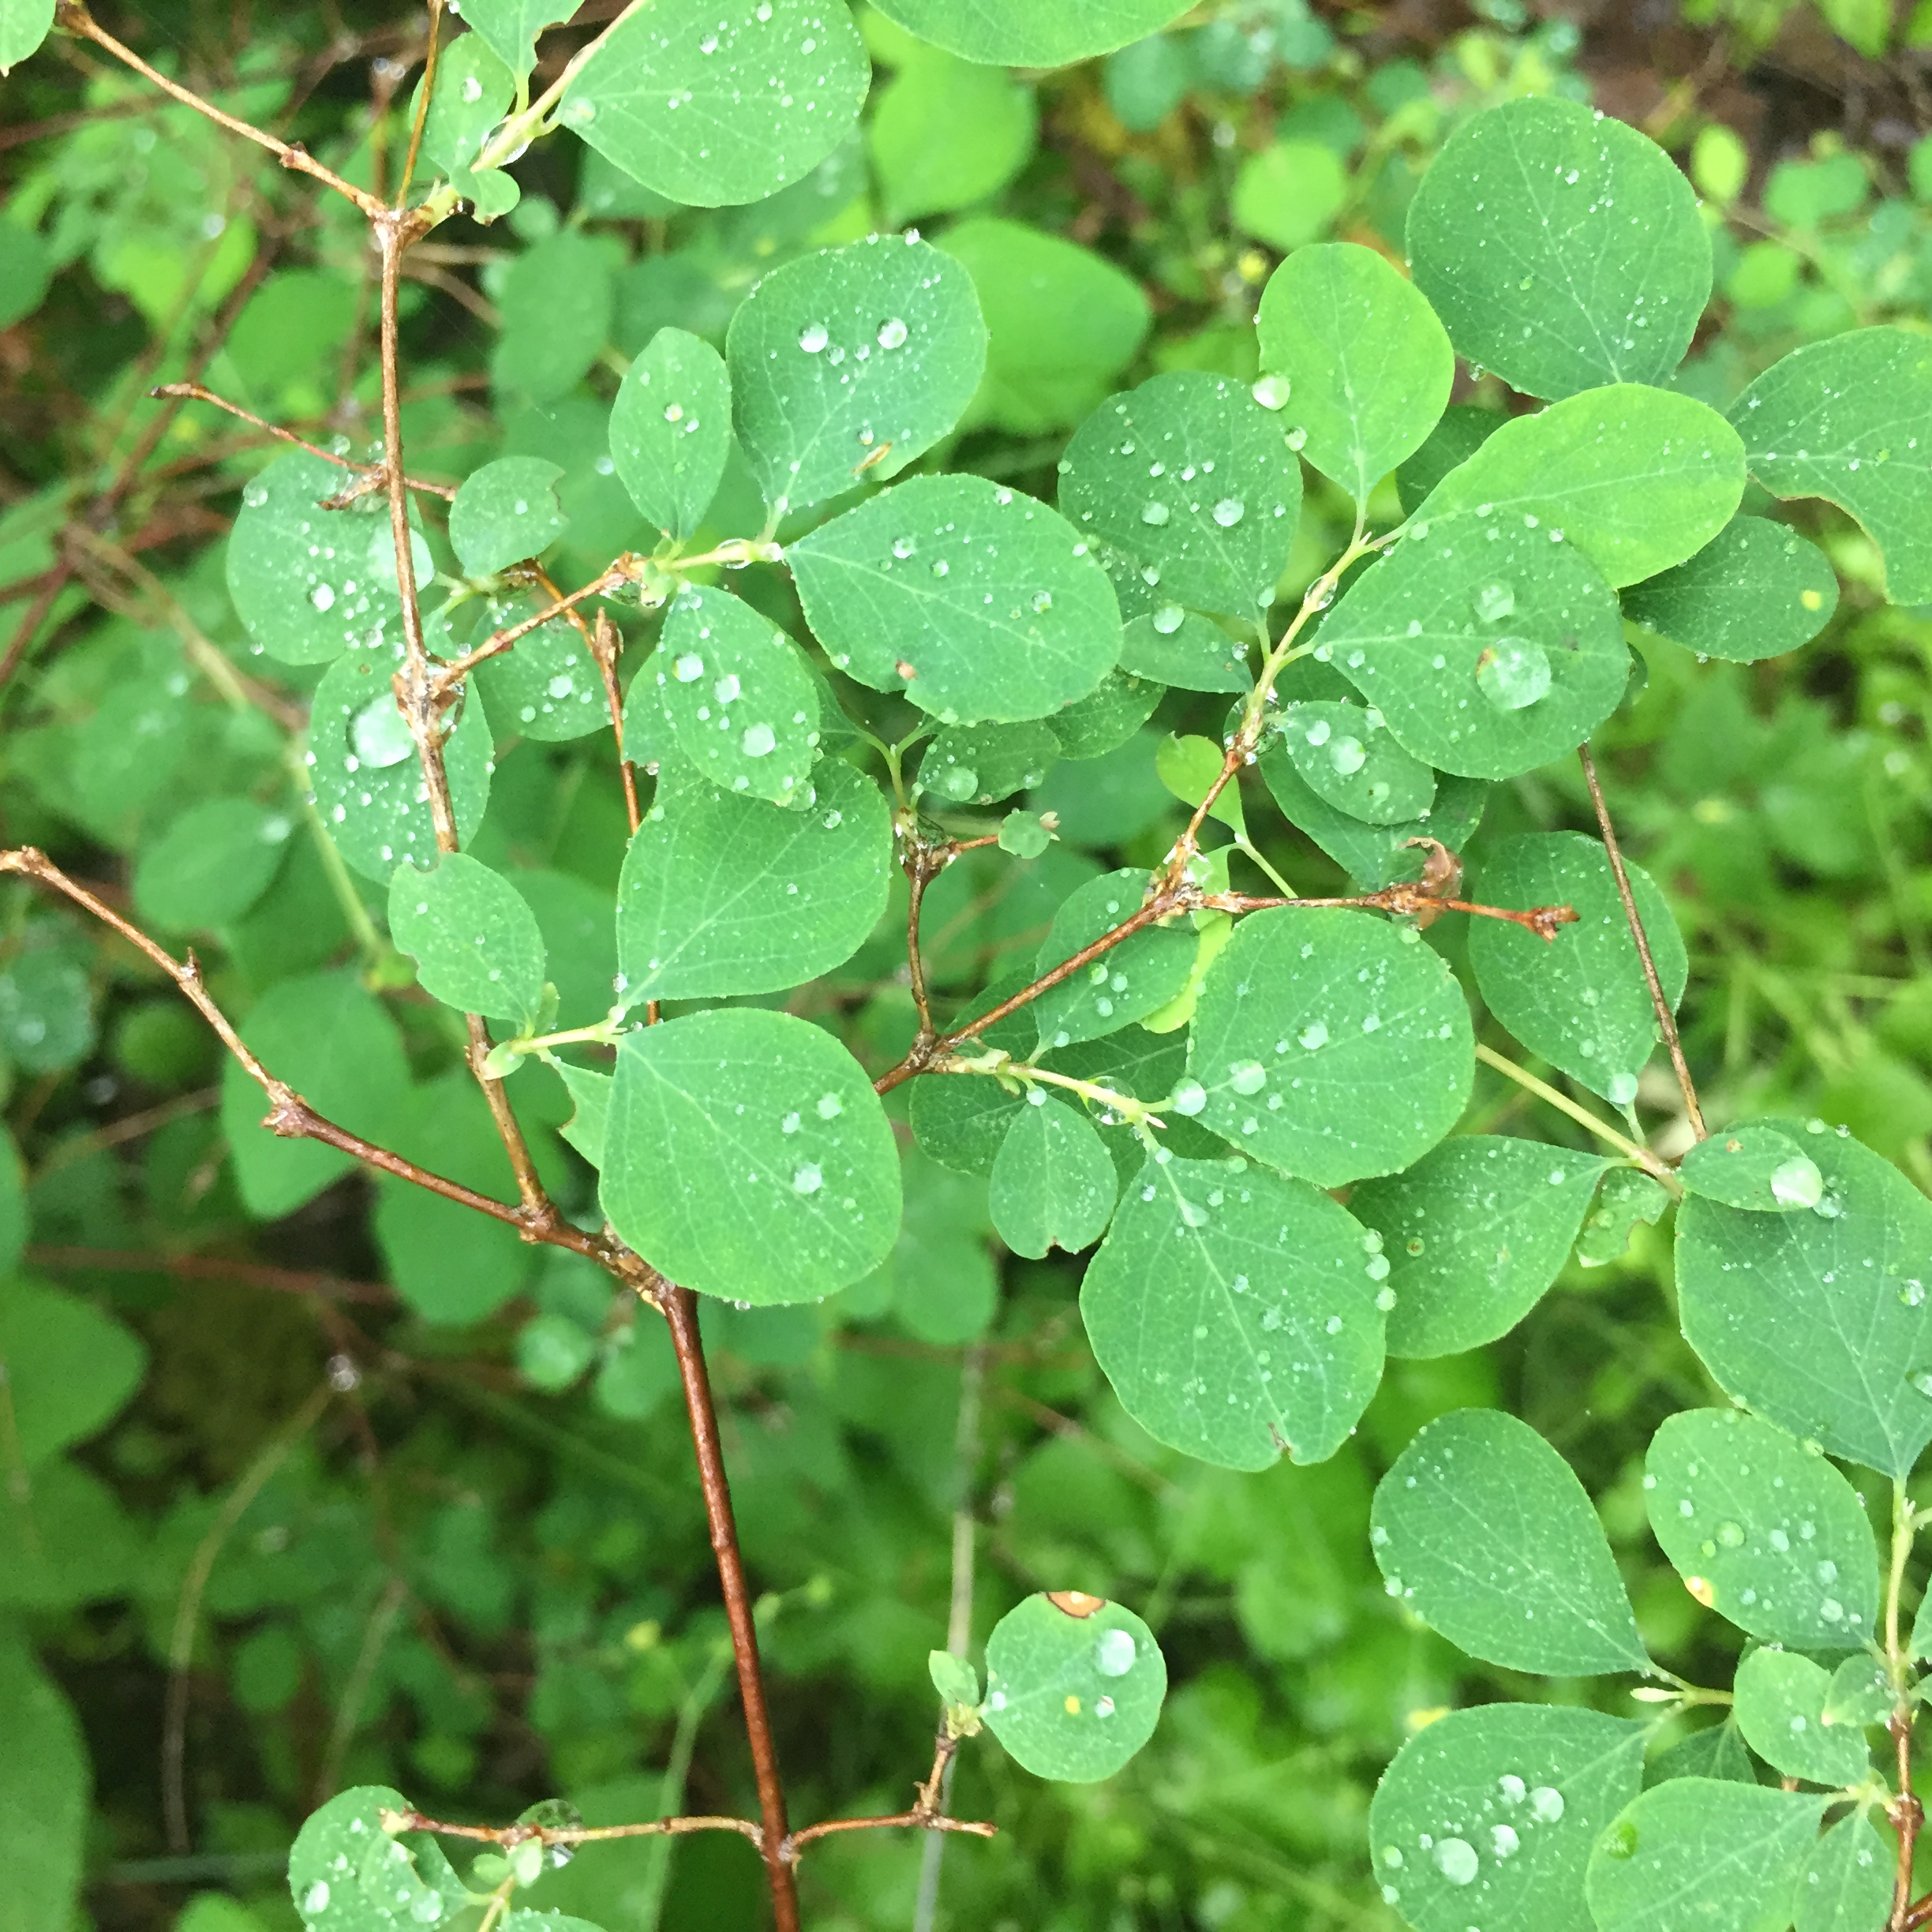 Small, round, bright green leaves from a snowberry plant.